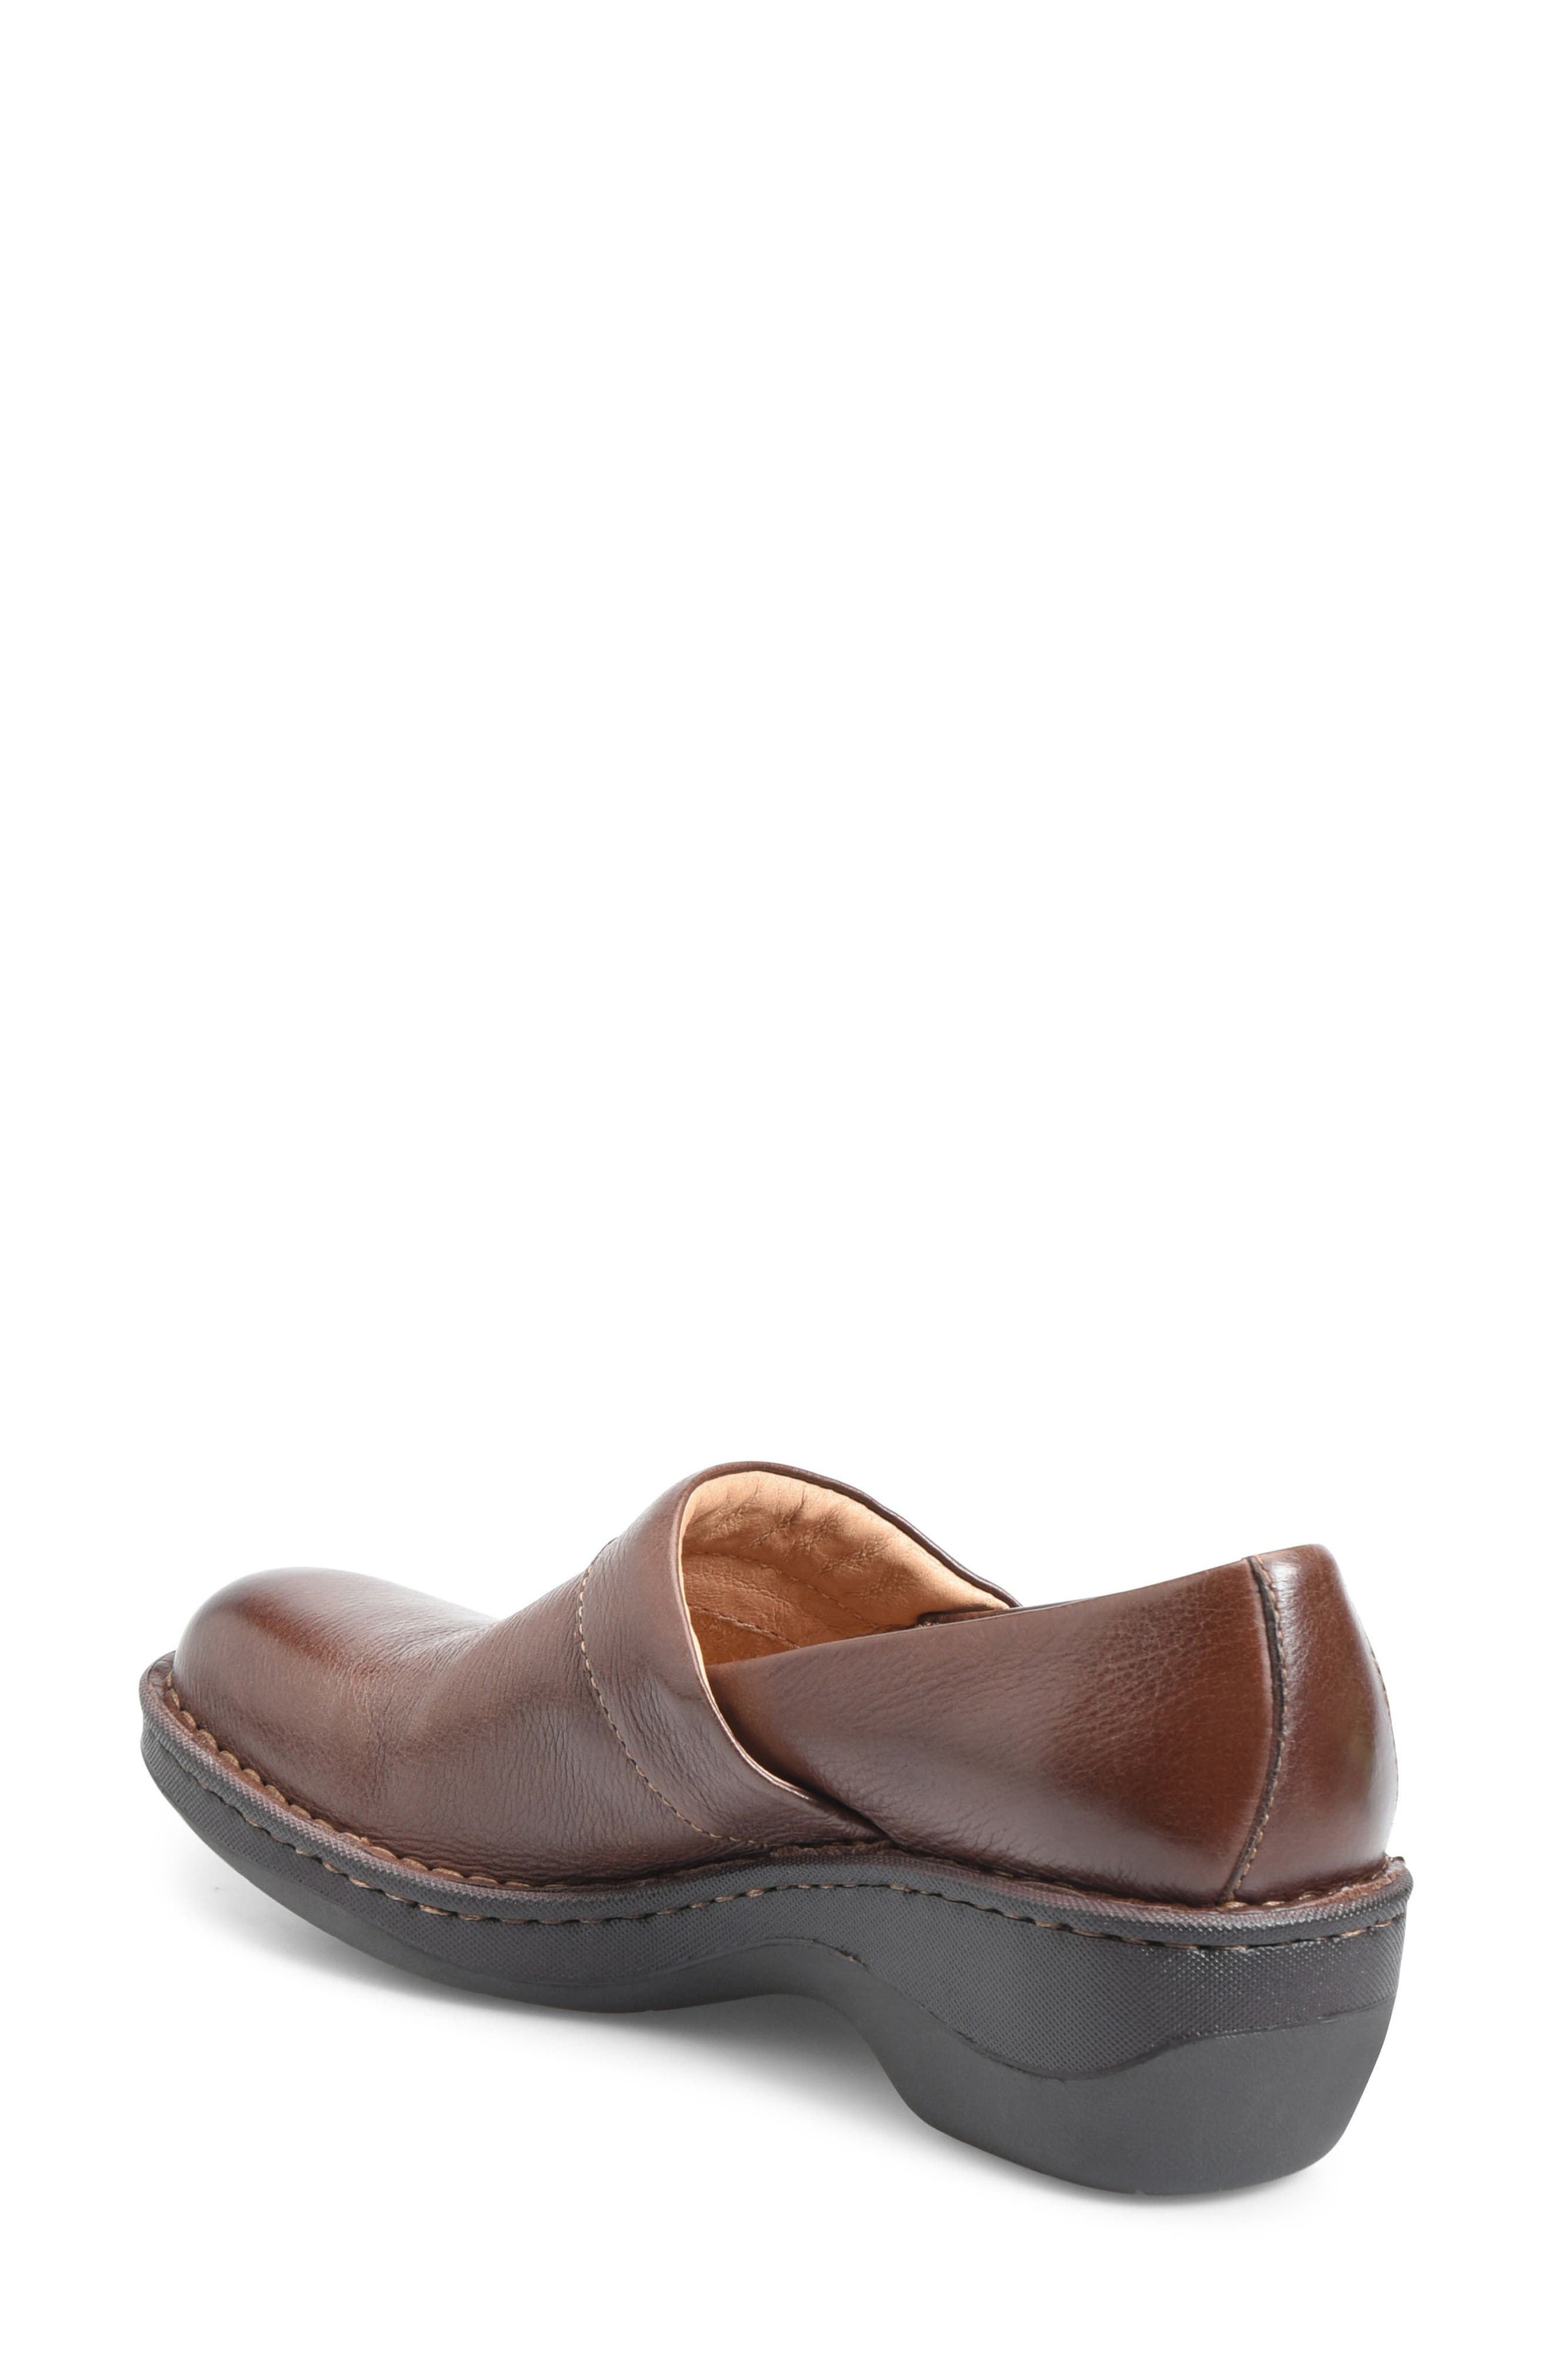 Toby Duo Clog,                             Alternate thumbnail 2, color,                             Chocolate Leather